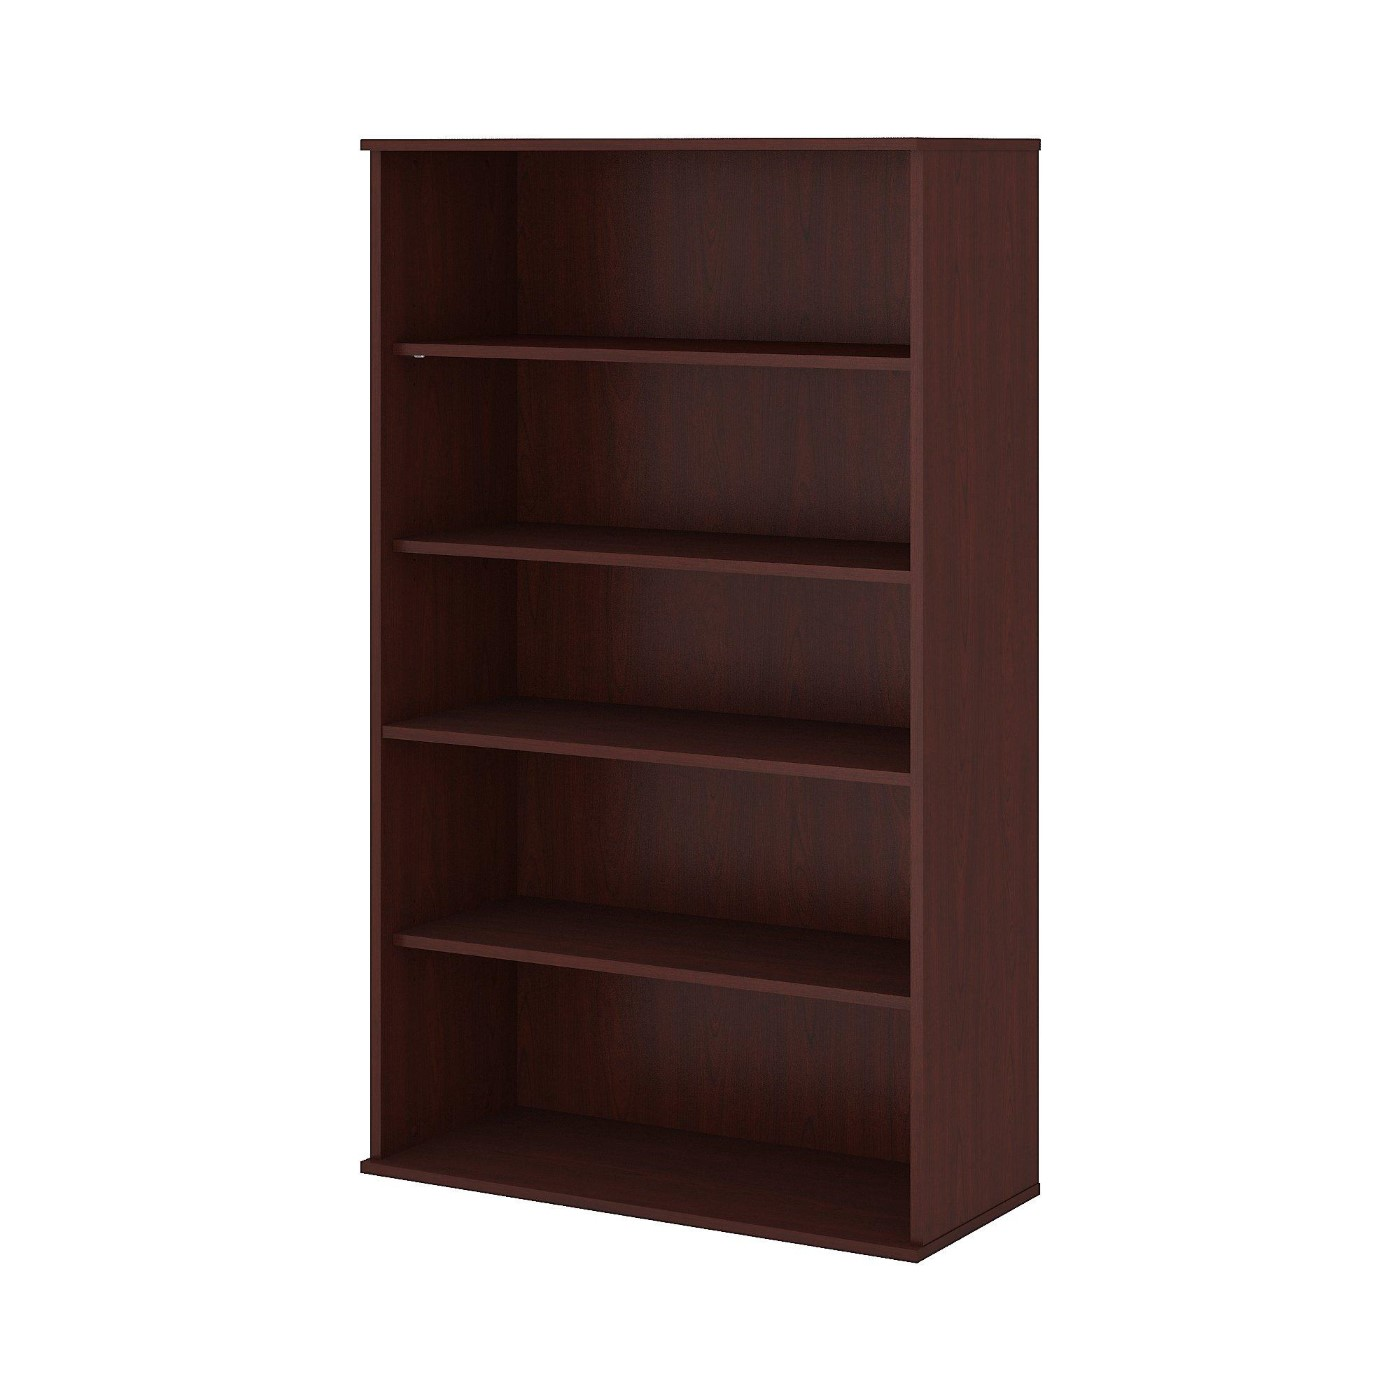 <font color=#c60><b>BUSH BUSINESS FURNITURE 66H 5 SHELF BOOKCASE. FREE SHIPPING</font></b>